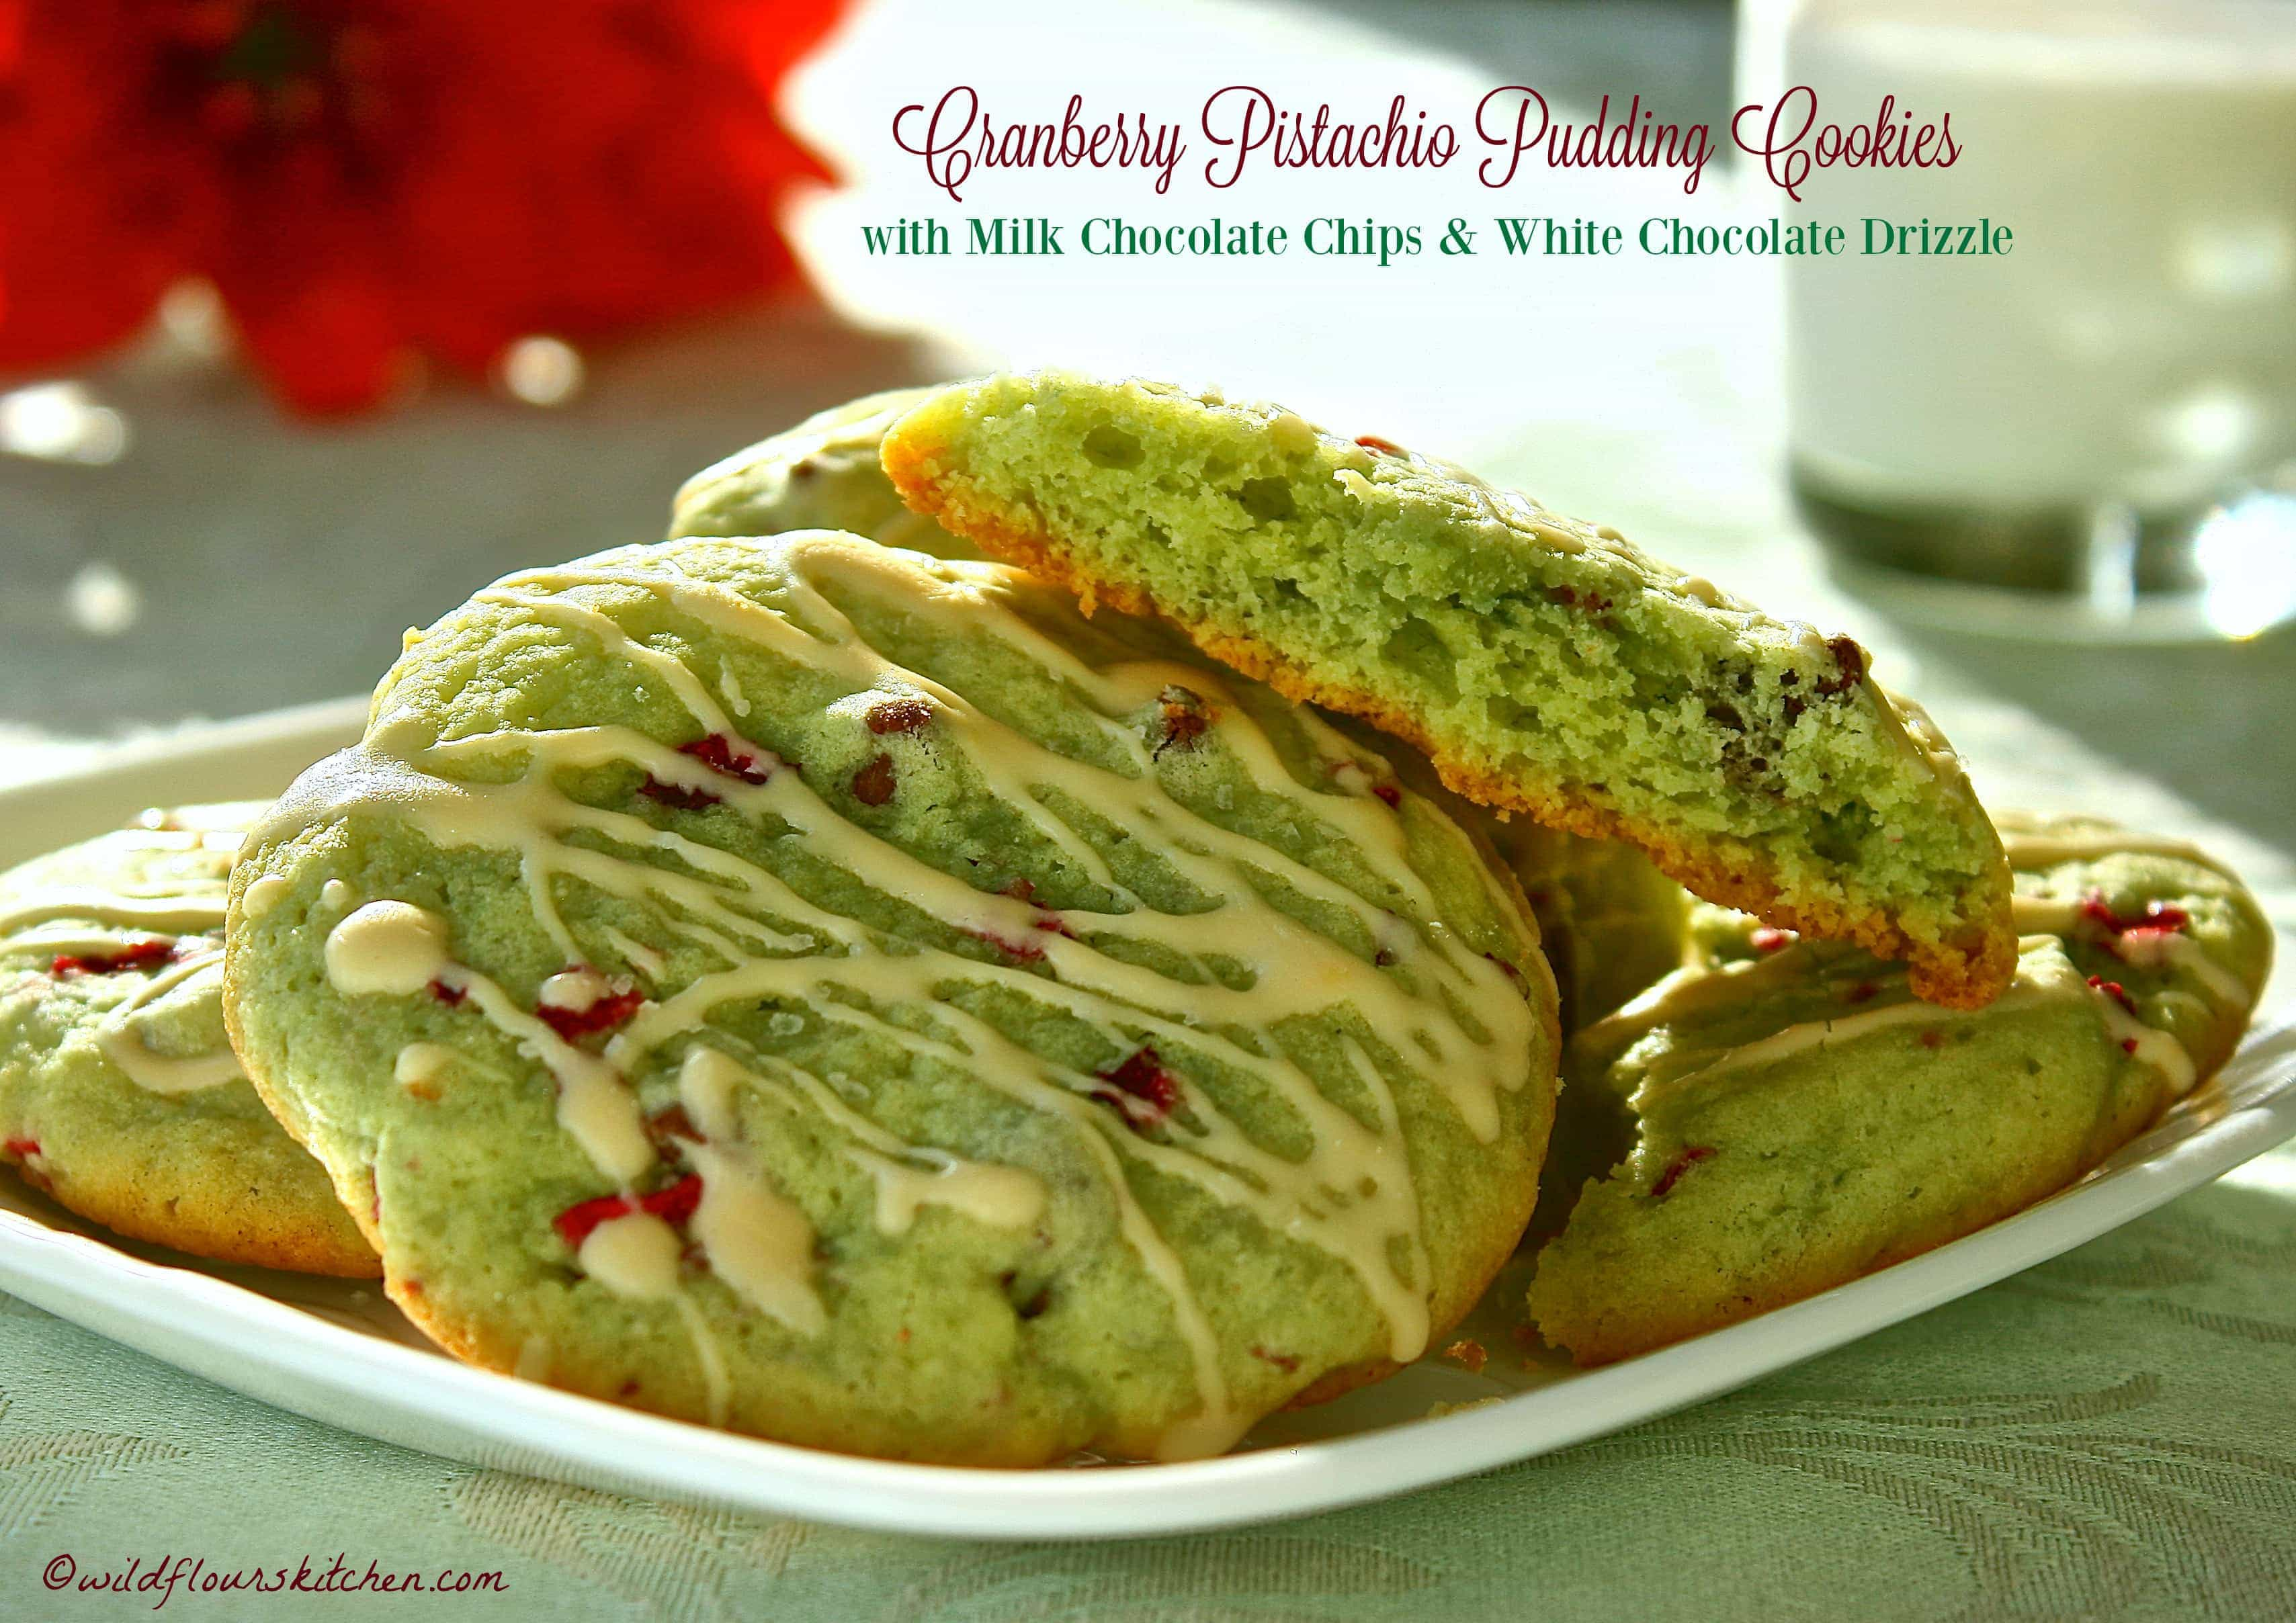 Cranberry Pistachio Pudding Cookies with Milk Chocolate Chips ...